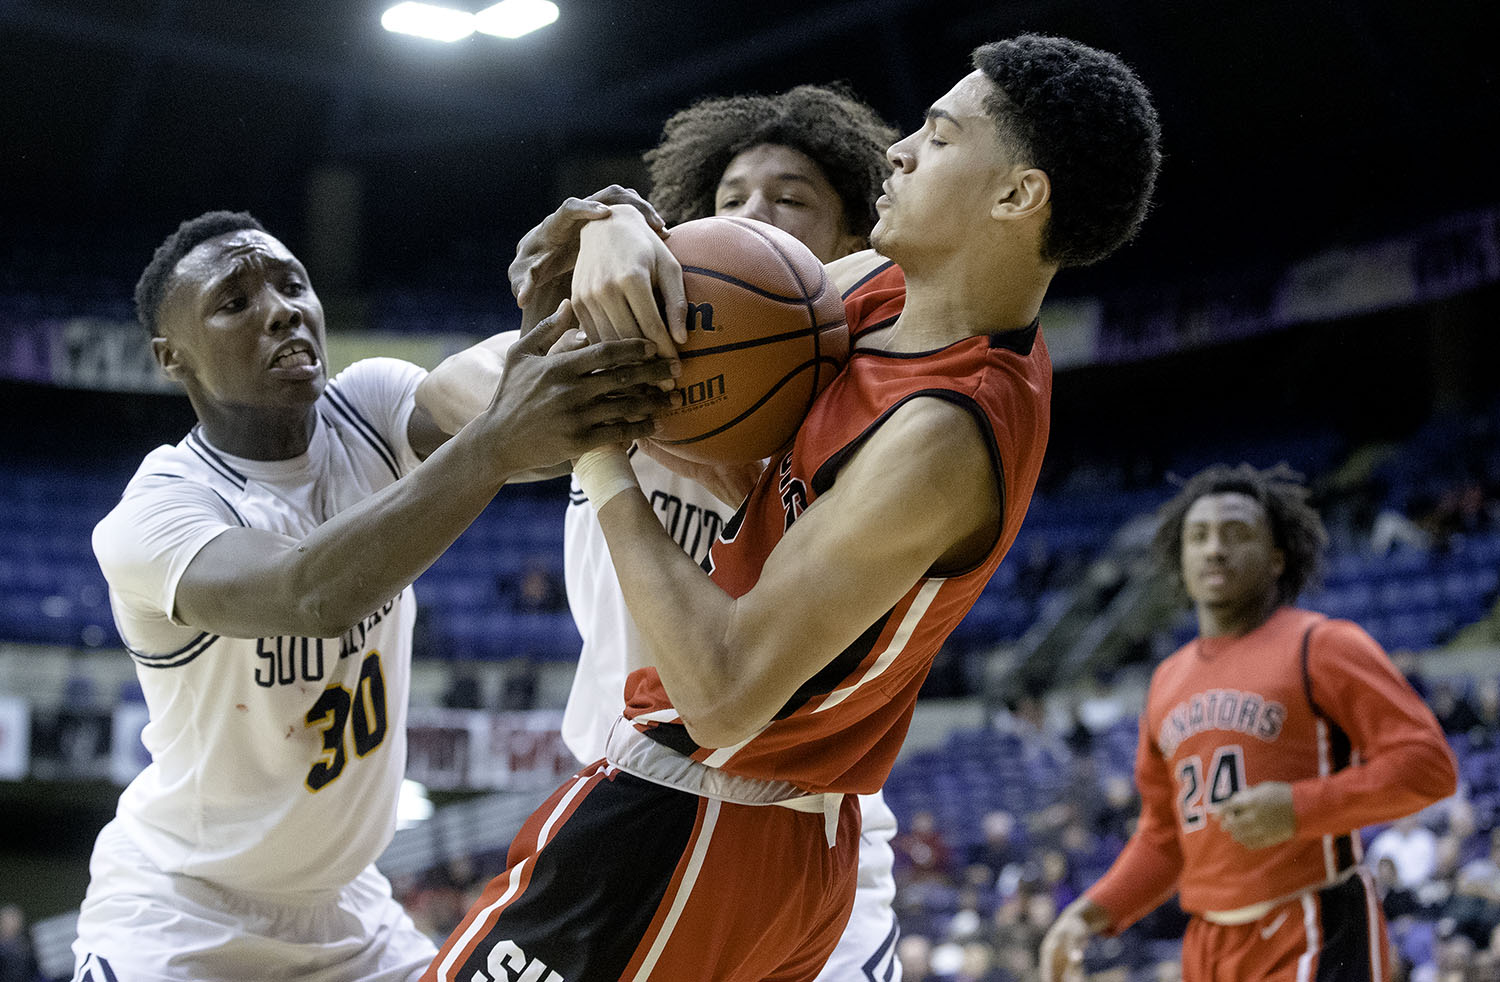 Southeast's Devin Blue-Robinson and Southeast's Michael Taylor pressure Springfield's Bennie Slater as he grabs a rebound during the Boys City Tournament at the Bank of Springfield Center Thursday, Jan. 17, 2019.  [Ted Schurter/The State Journal-Register]